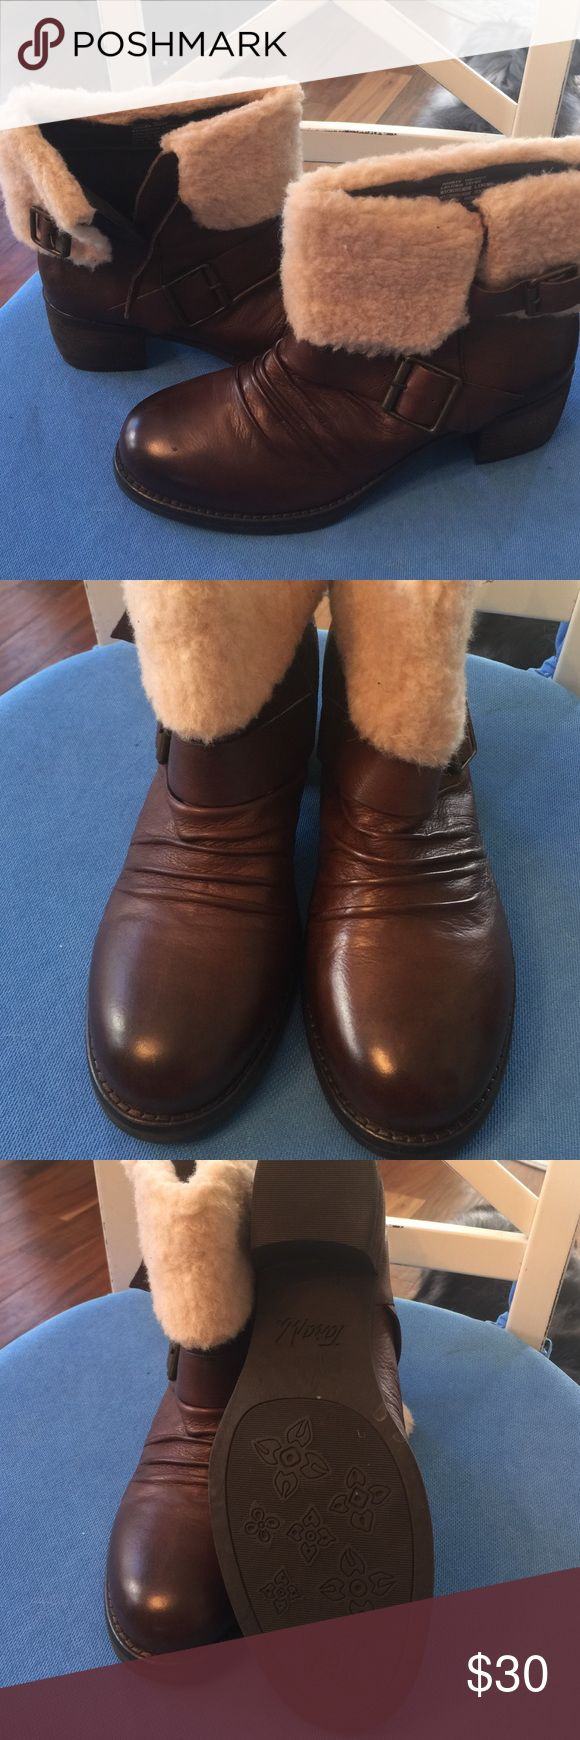 Brown leather ankle boots New, never worn brown leather ankle boots with fur and a buckle for easy on off along with great accent piece. Tara M Shoes Ankle Boots & Booties